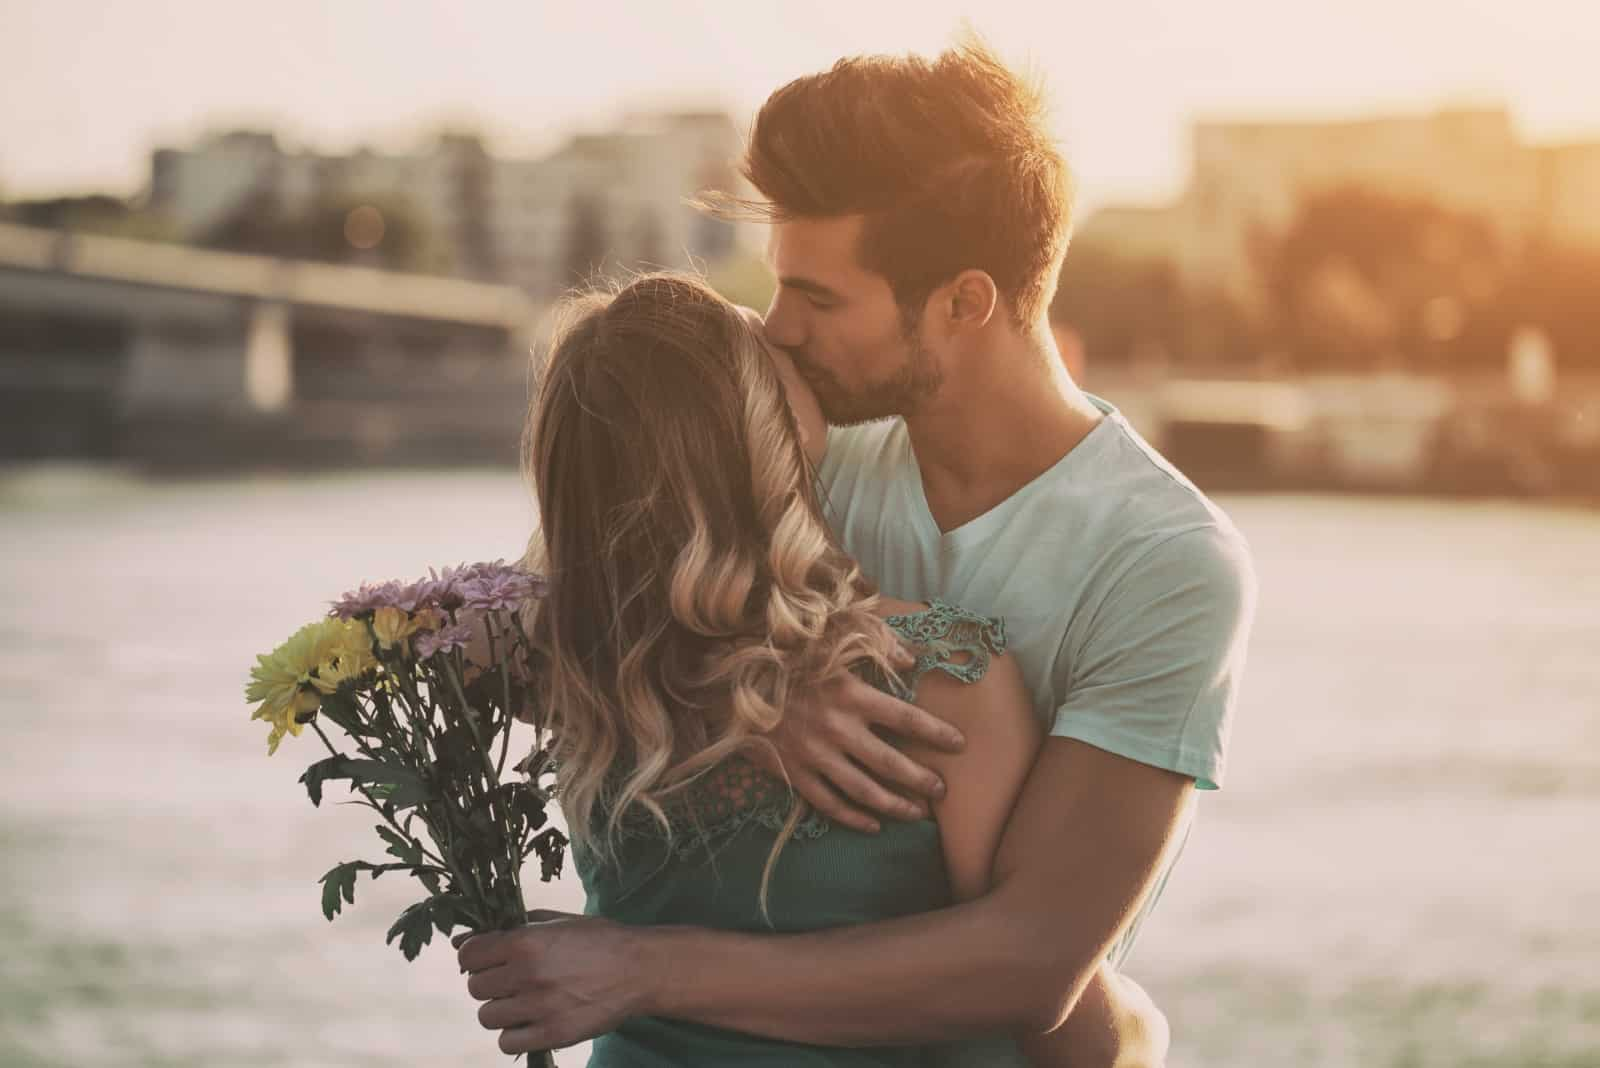 man holding bouquet of flowers while kissing woman